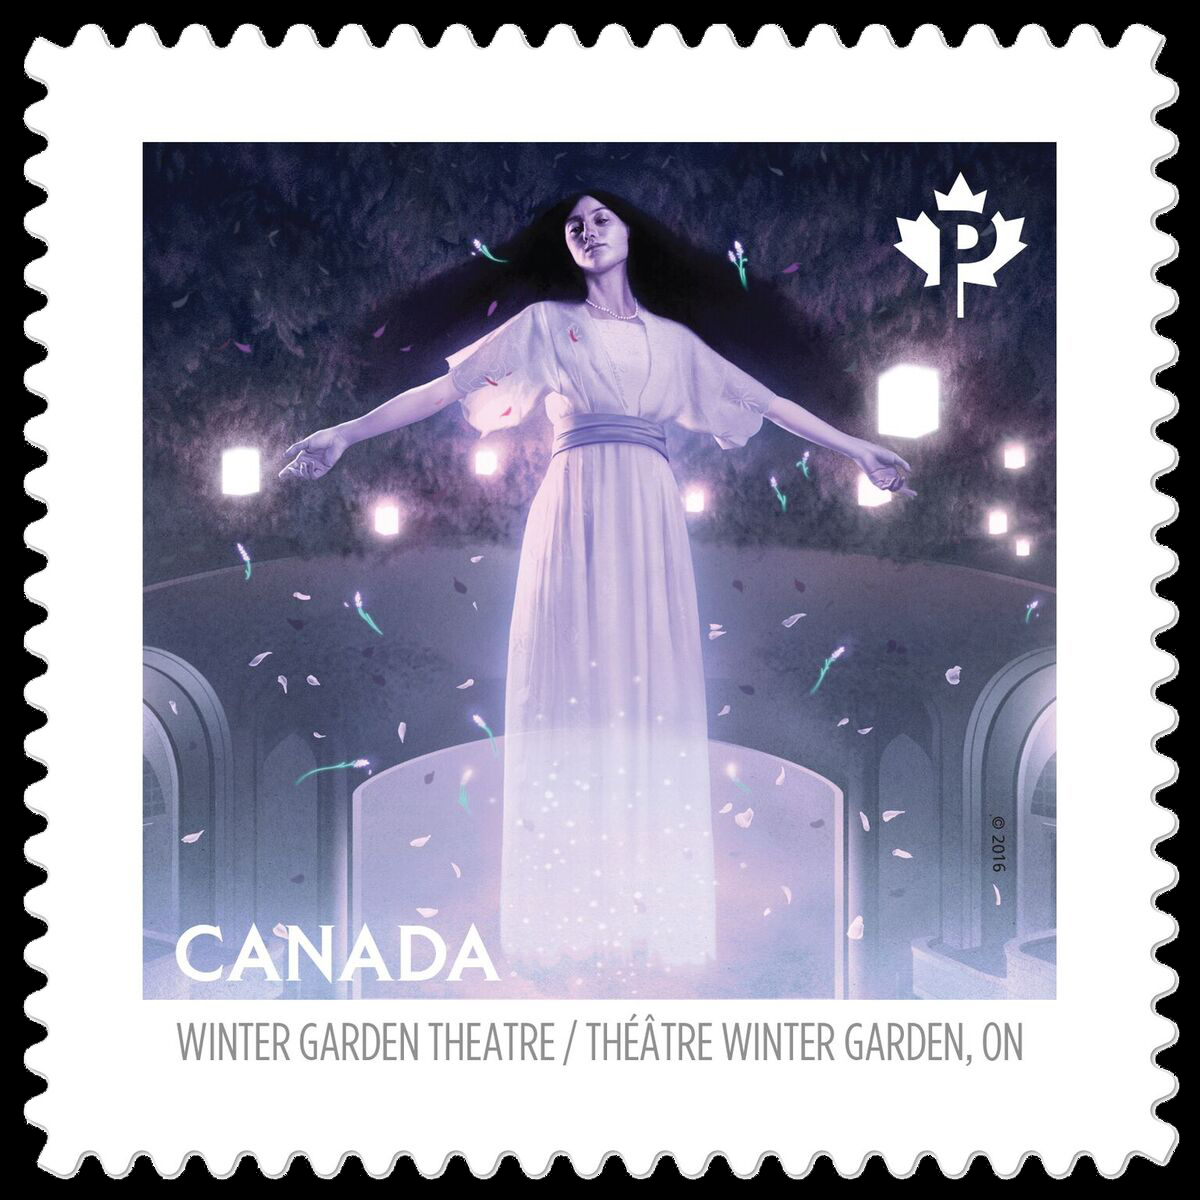 The Elgin and Winter Garden Theatre Centre - Toronto Canada Postage Stamp